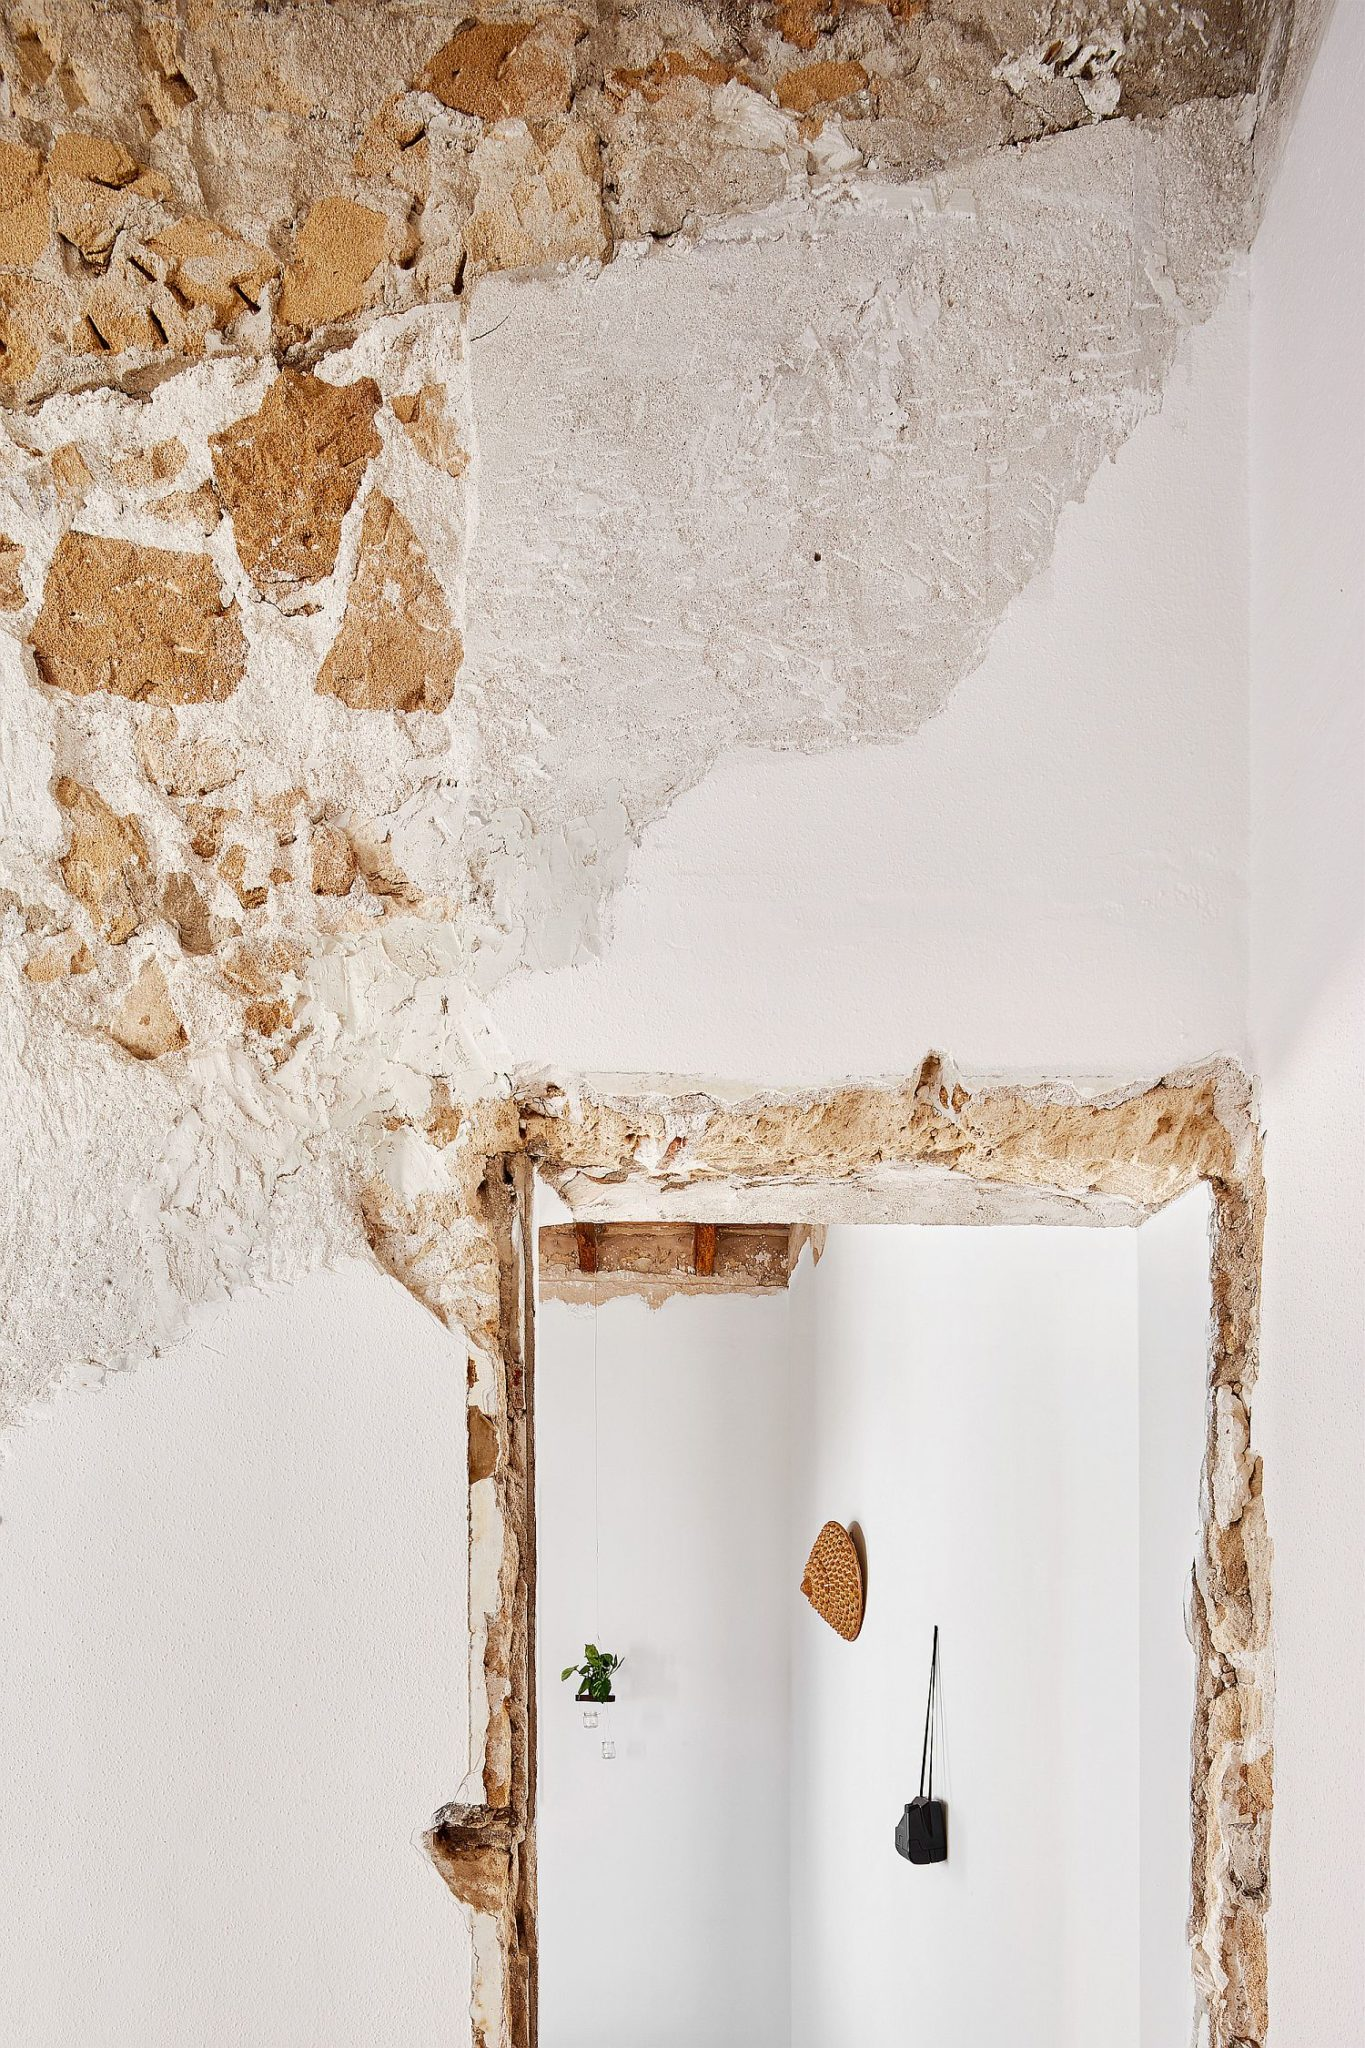 Carefully restore home in Spain on a budget with walls that have a distressed finish